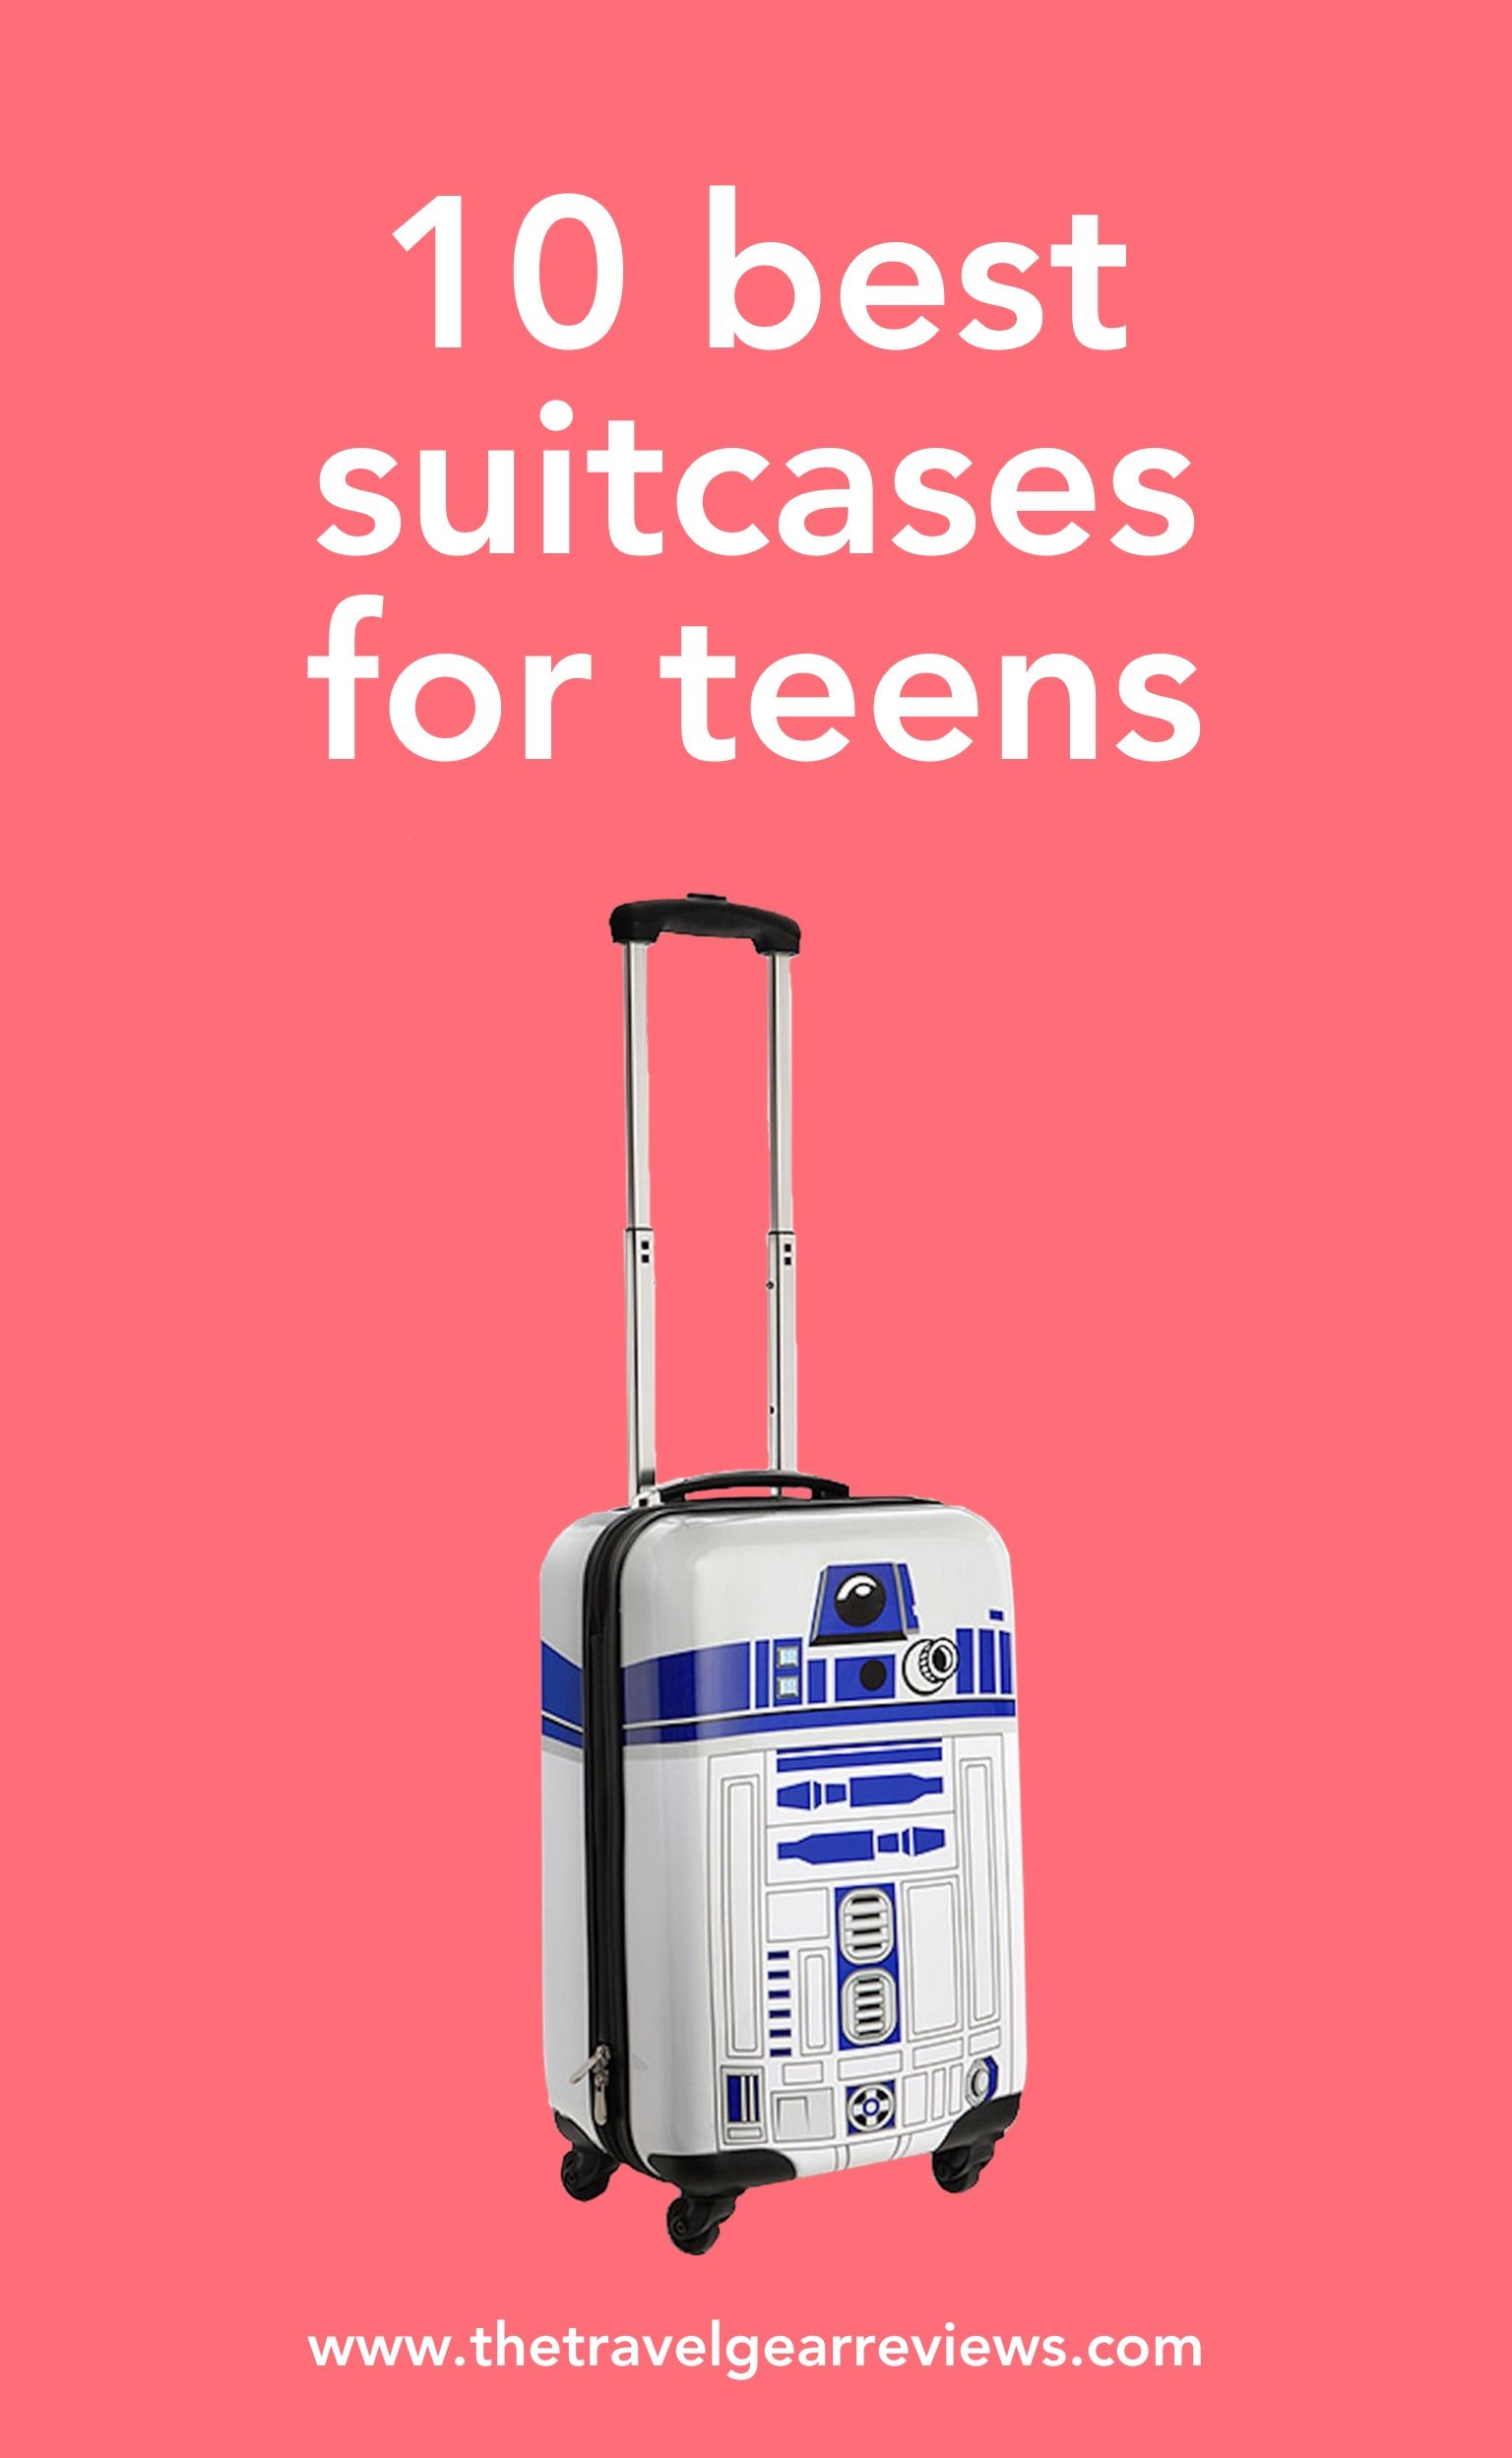 Luggage for Teens  10 Stylish Suitcases for Traveling Teens  d7647879d056e